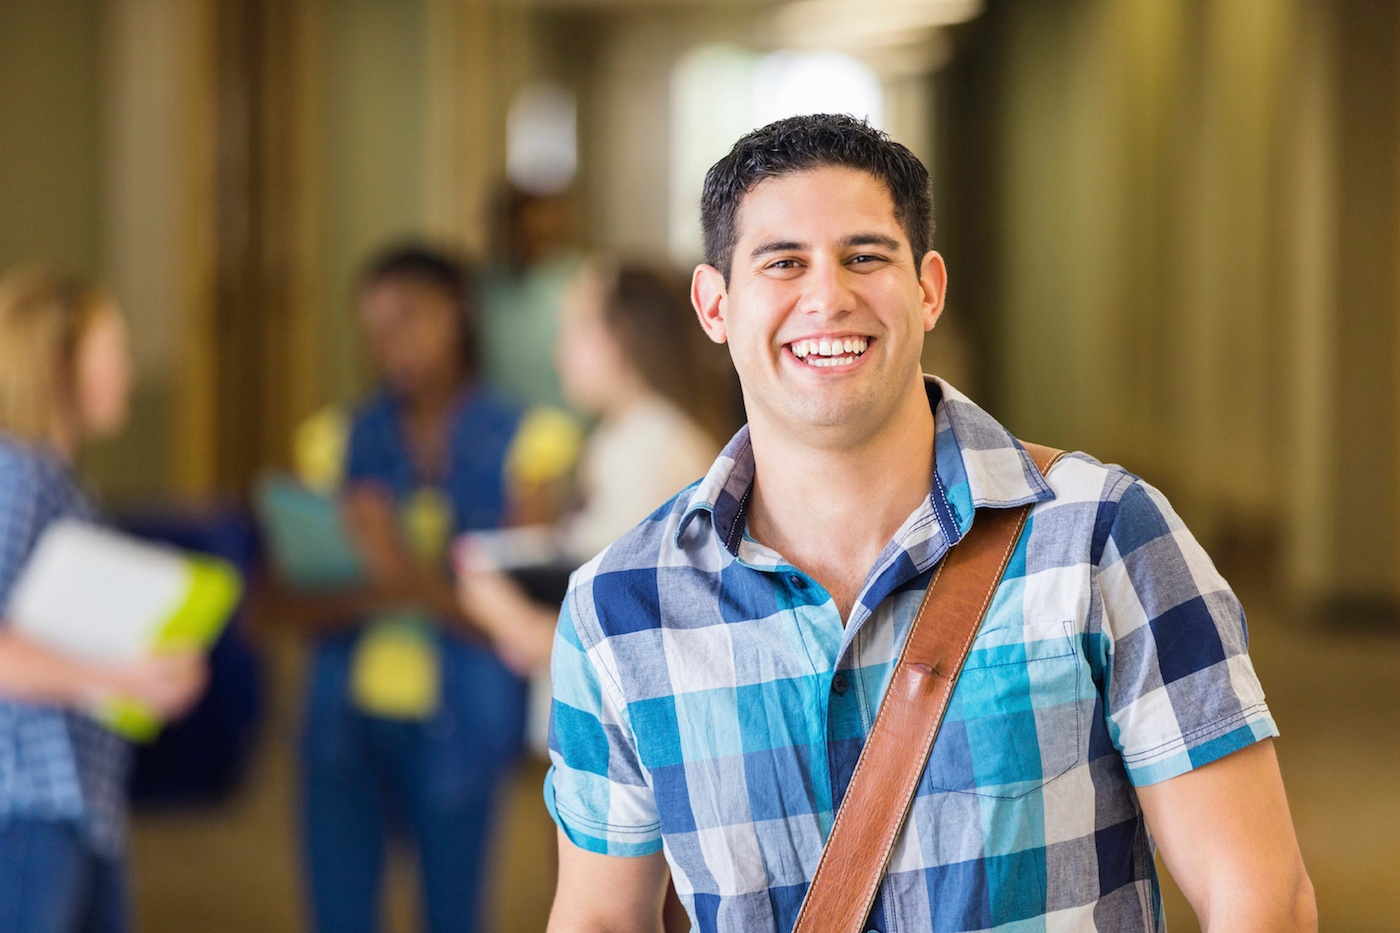 What makes you the perfect college applicant?